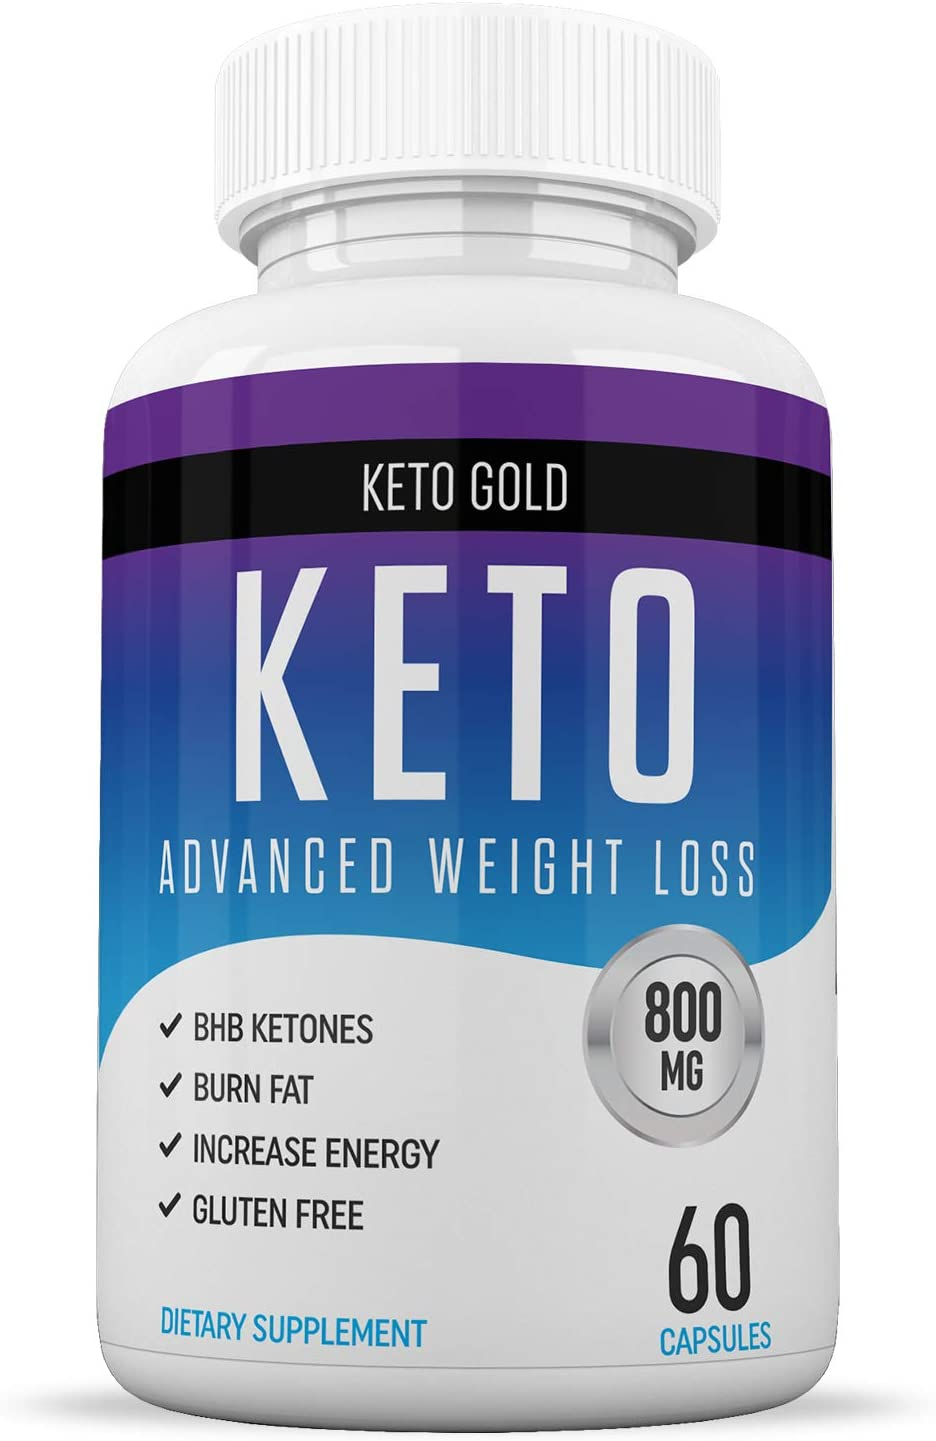 keto diet pill shark tank